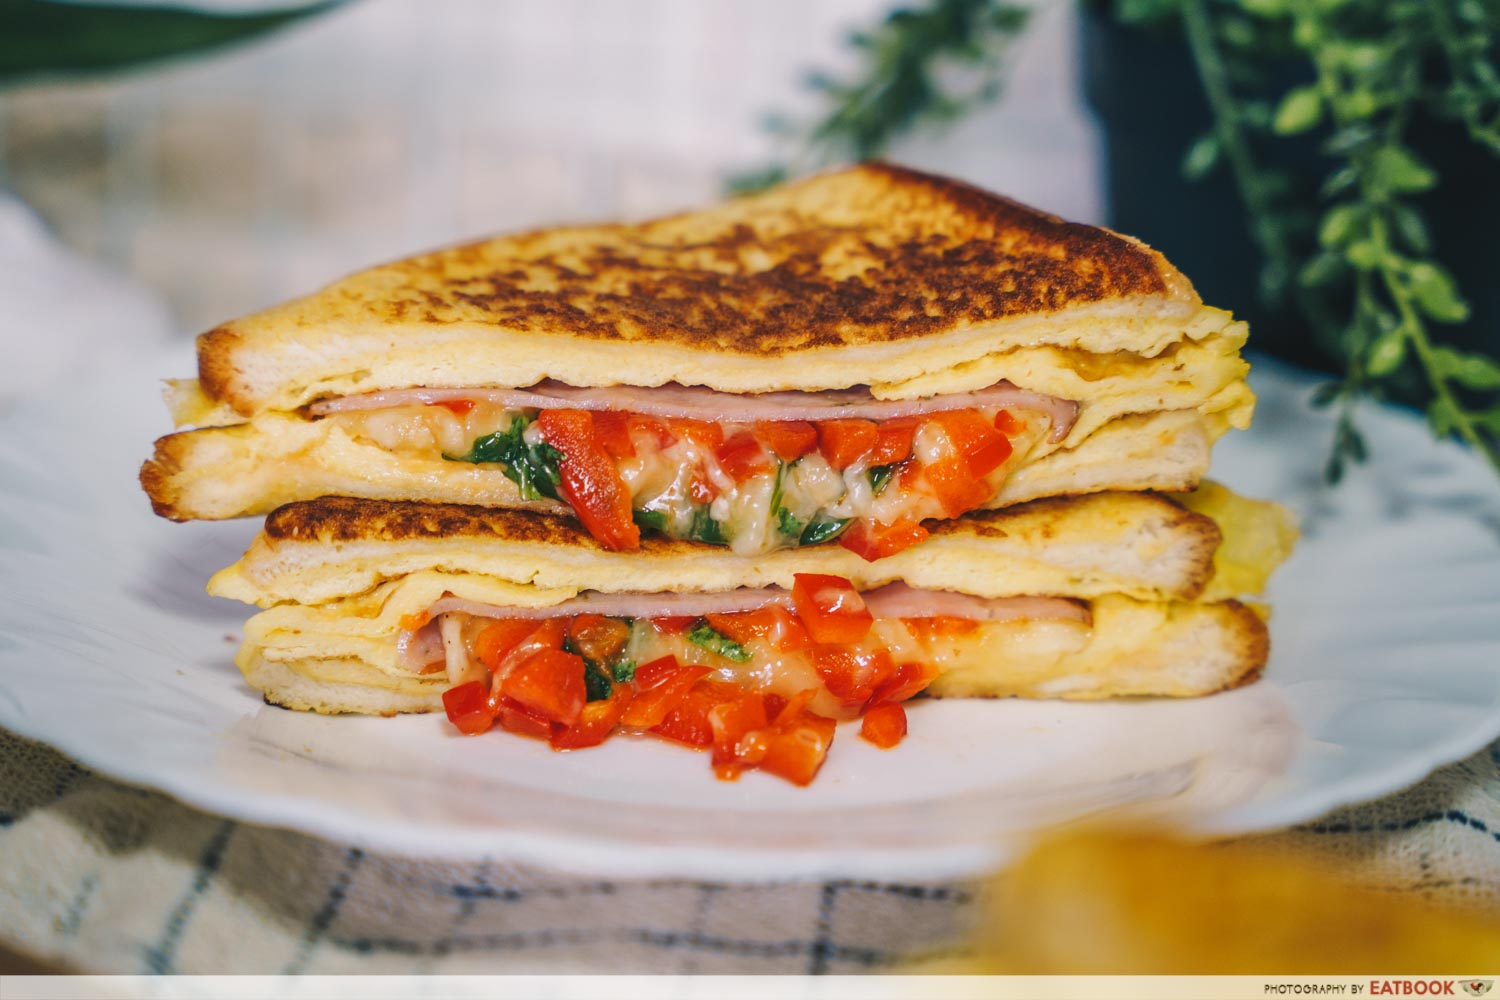 Sandwich Recipes - One-Pan Egg Sandwich